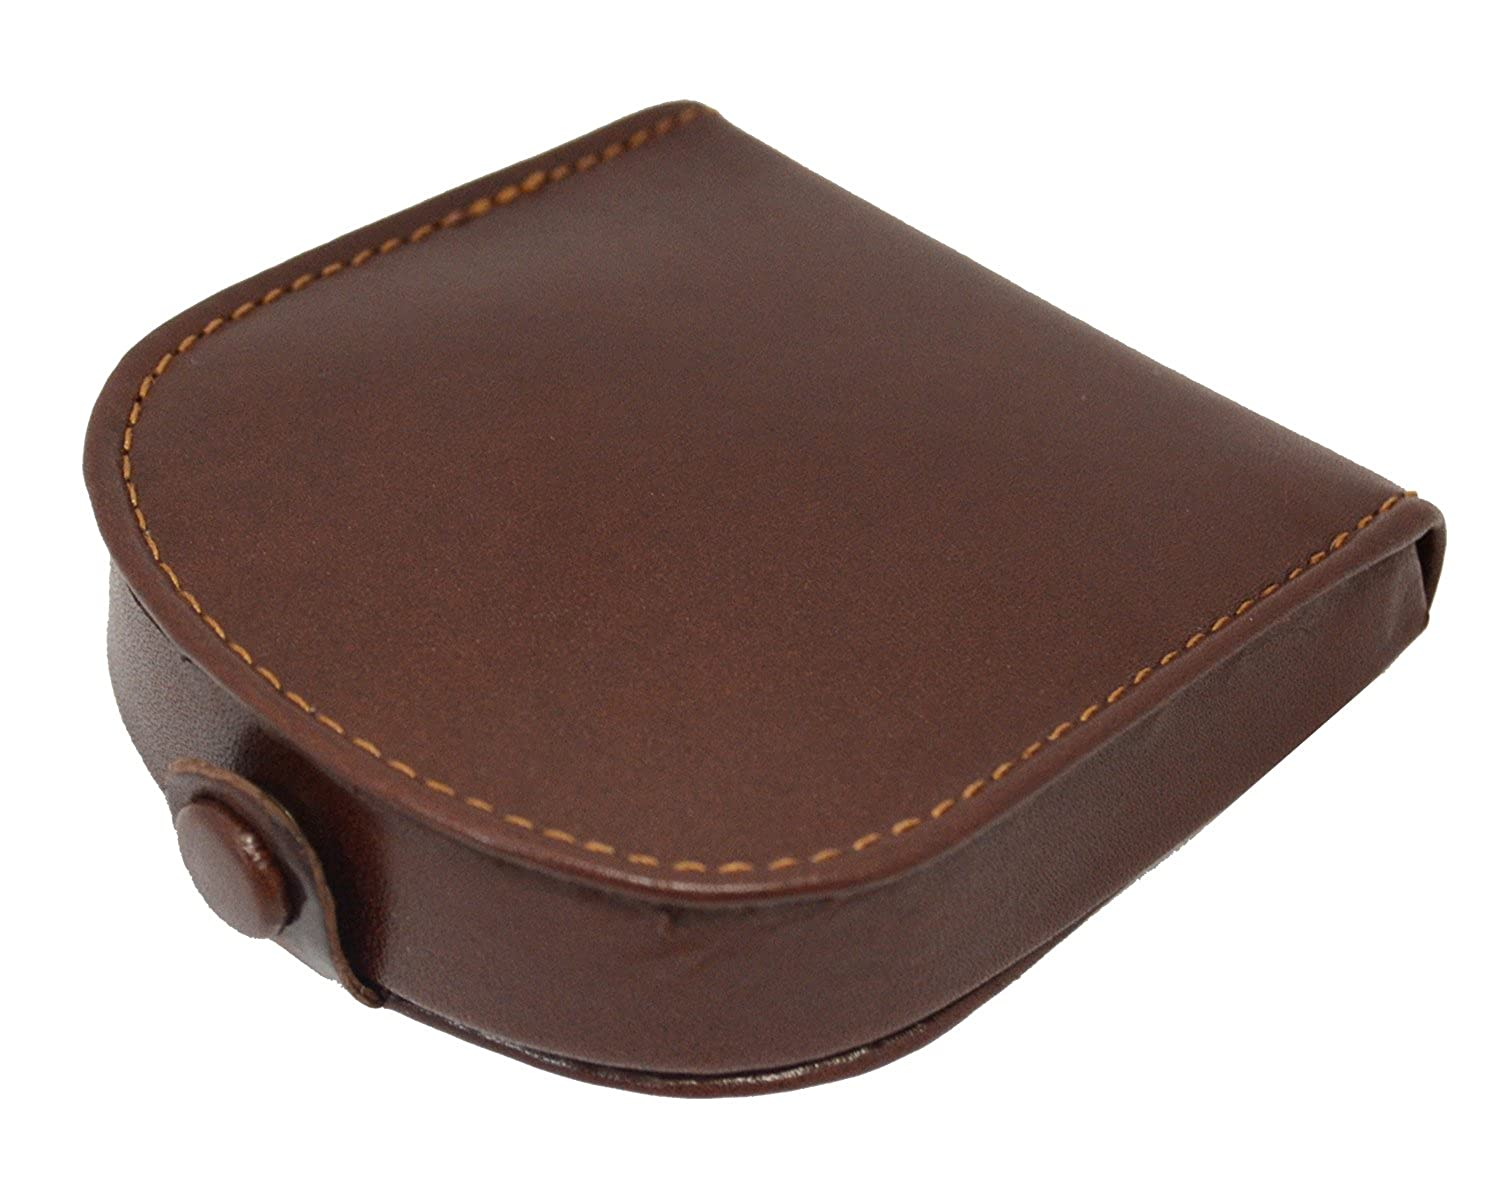 6febcc7108 Amazon.com: Visconti Polo T-5 Brown Soft Leather Coin Purse Pouch Tray/Change  Holder (Black): Clothing